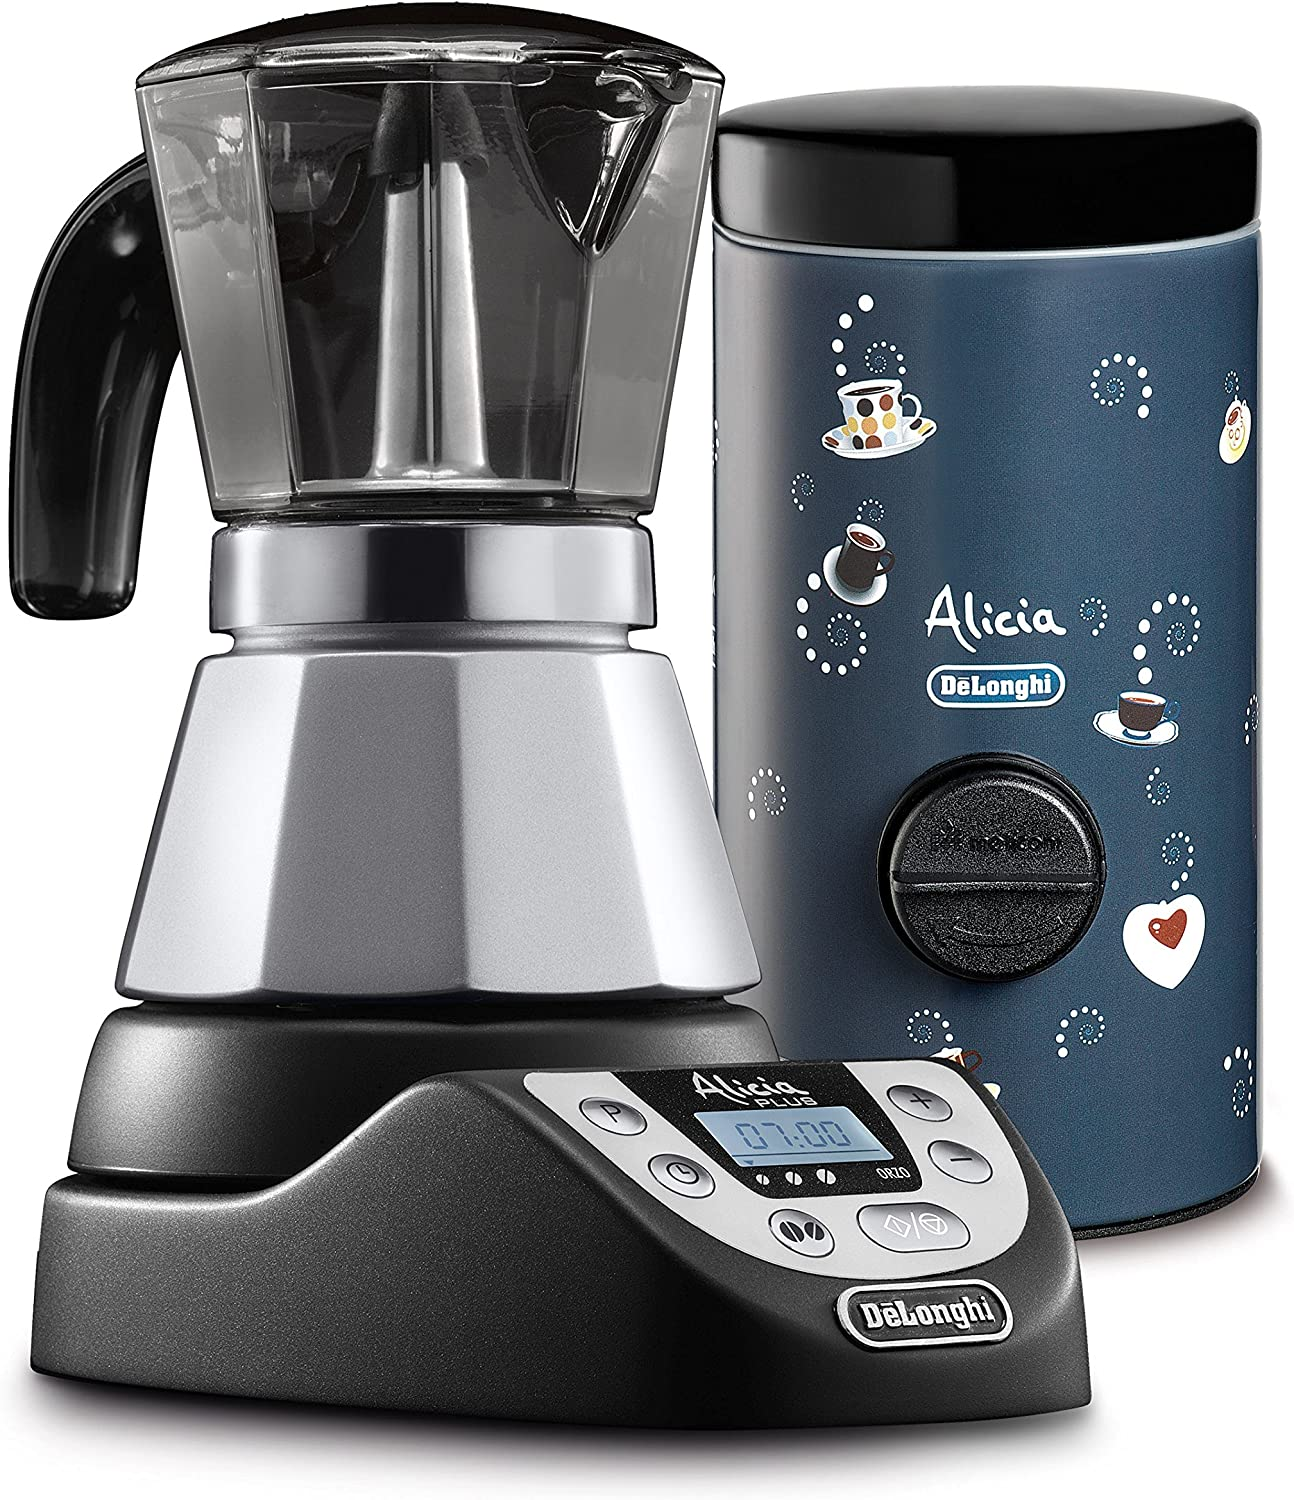 DeLonghi EMKP42.B - Cafetera eléctrica Alicia Plus, color plata ...